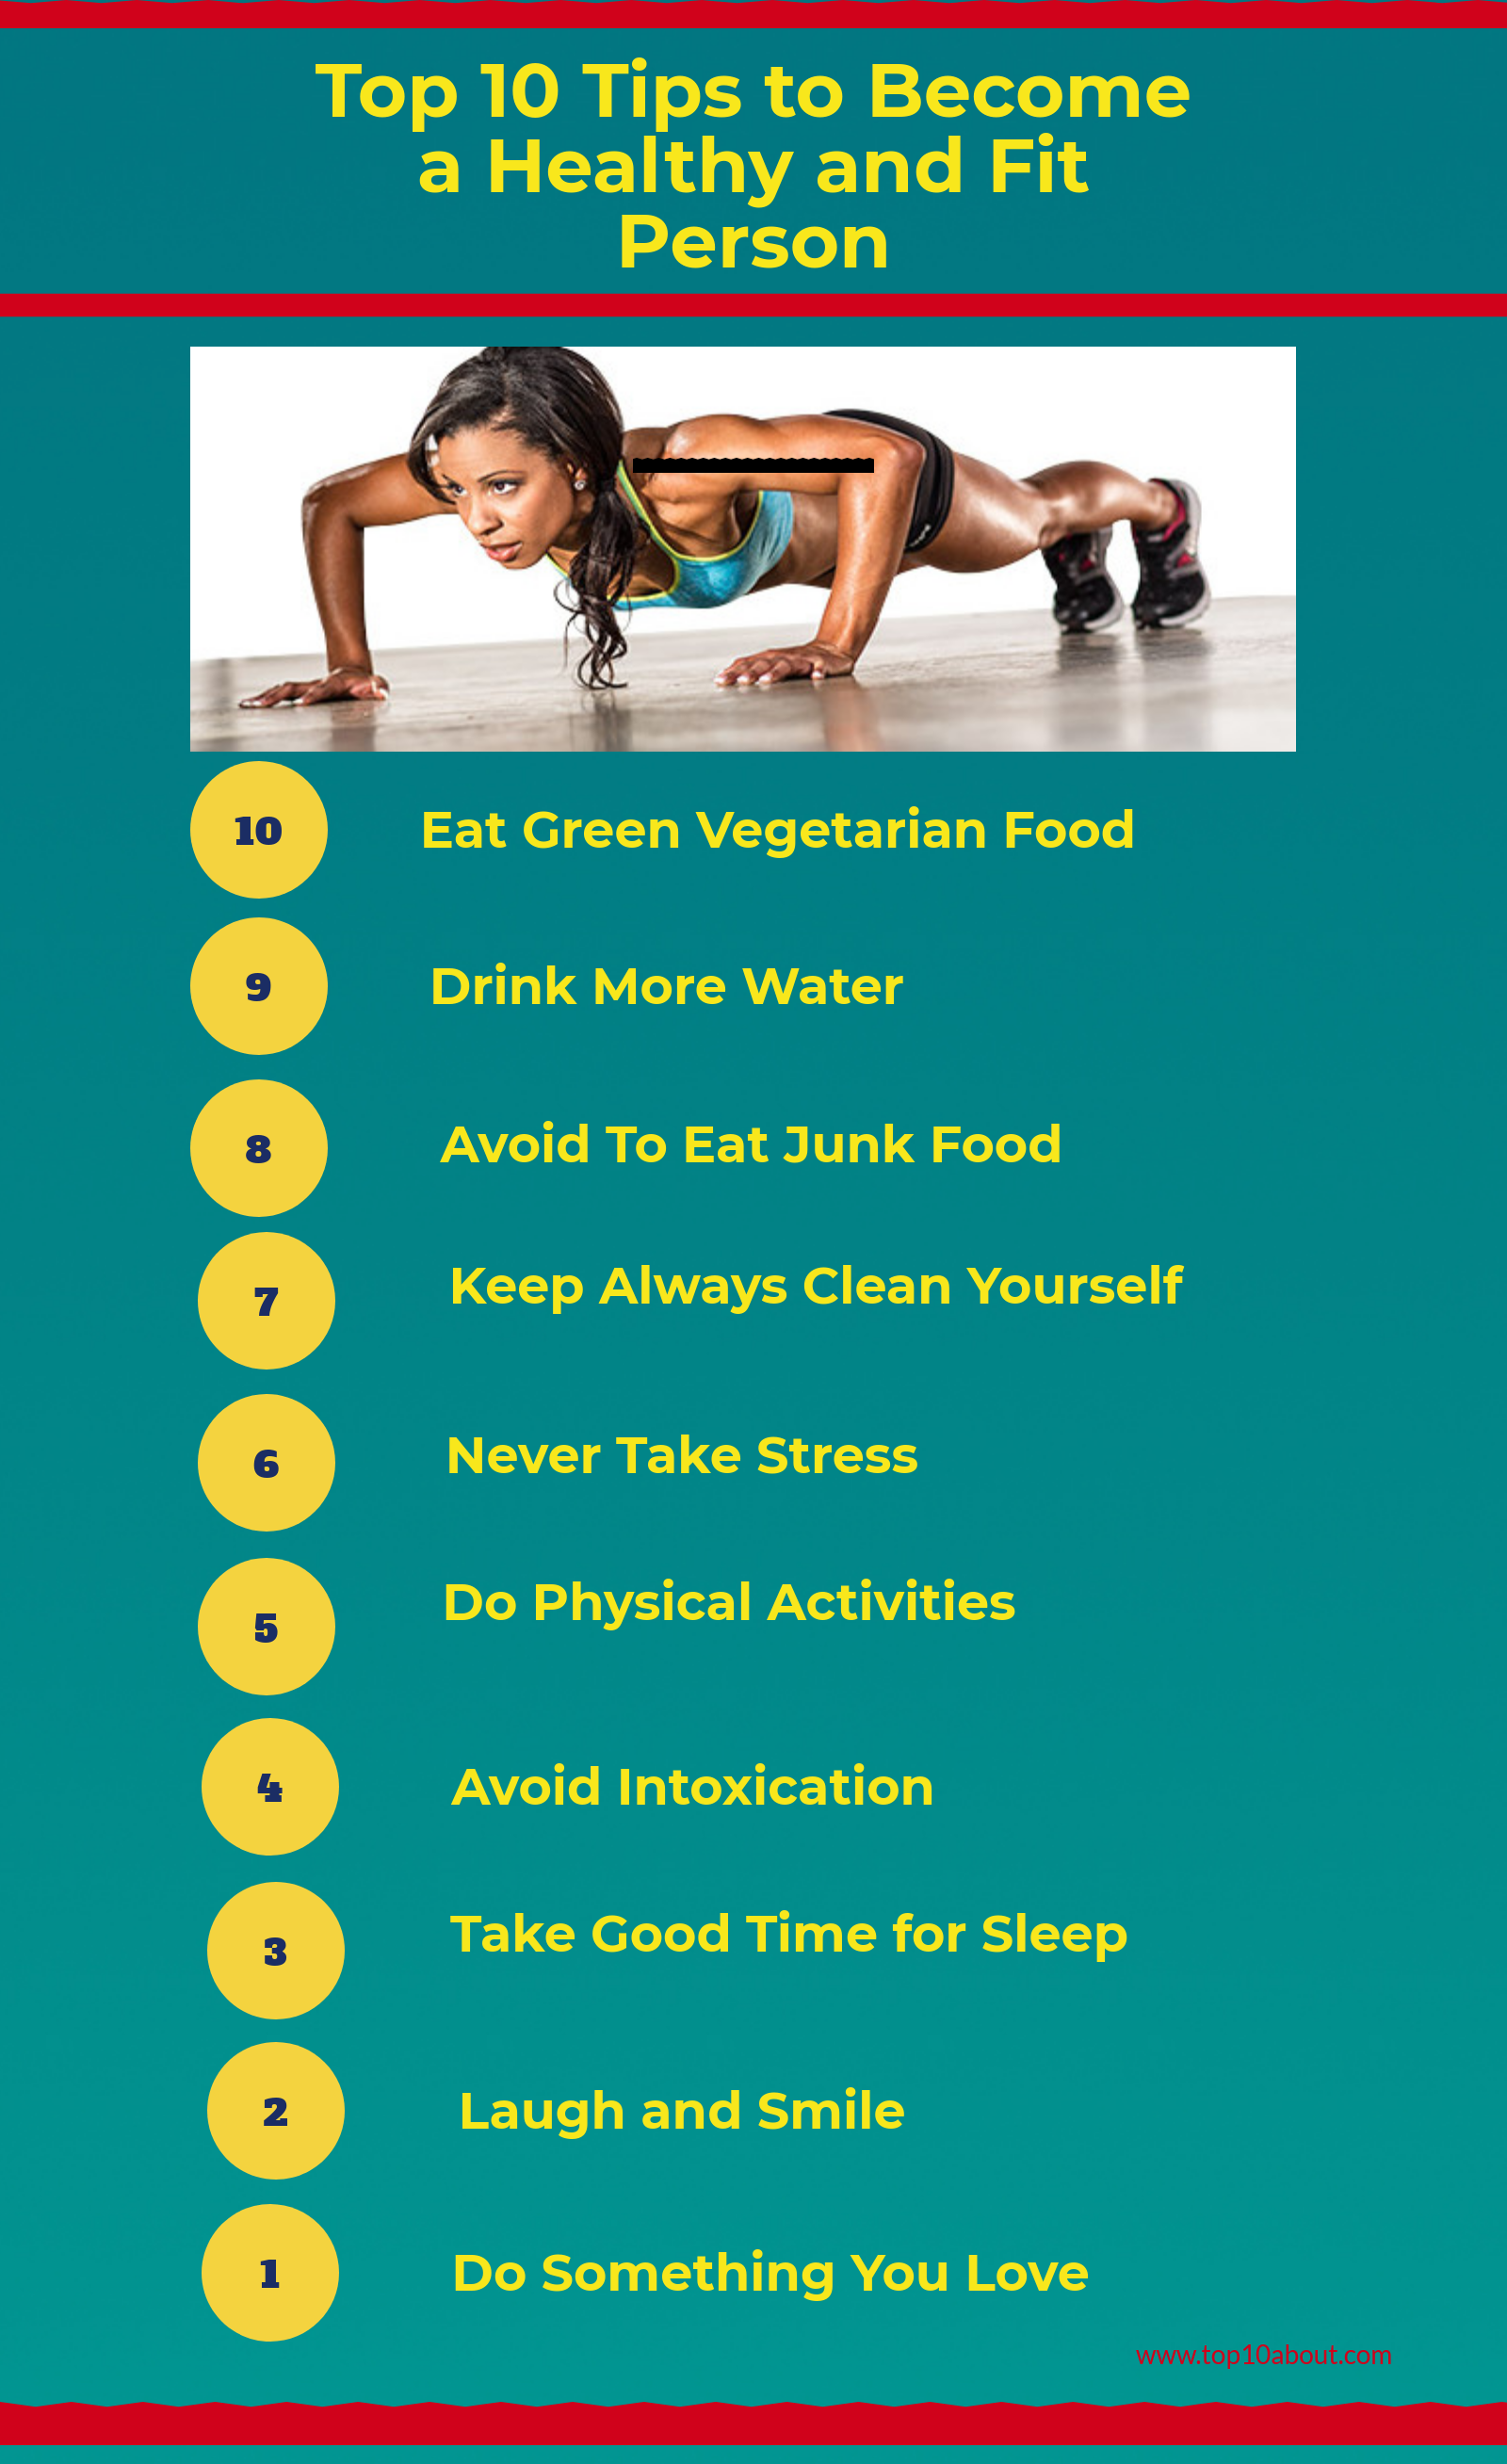 Top 10 Tips to Become a Healthy and Fit Person